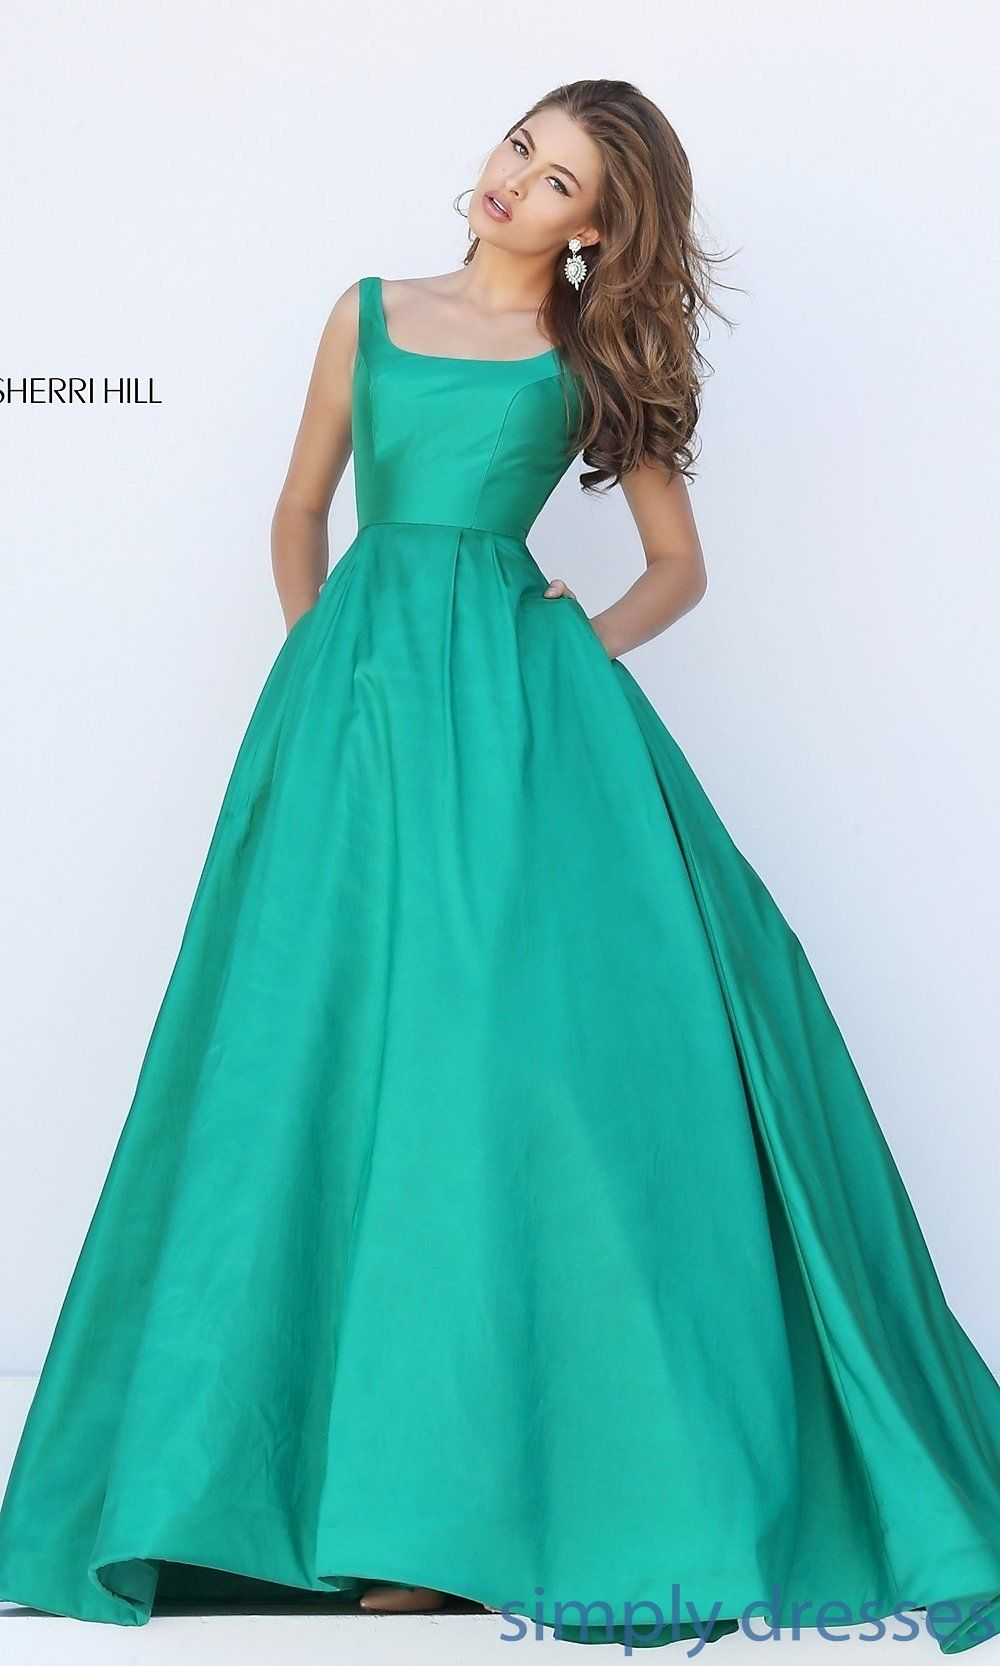 Homecoming Dresses, Formal Prom Dresses, Evening Wear: SH-50404 ...